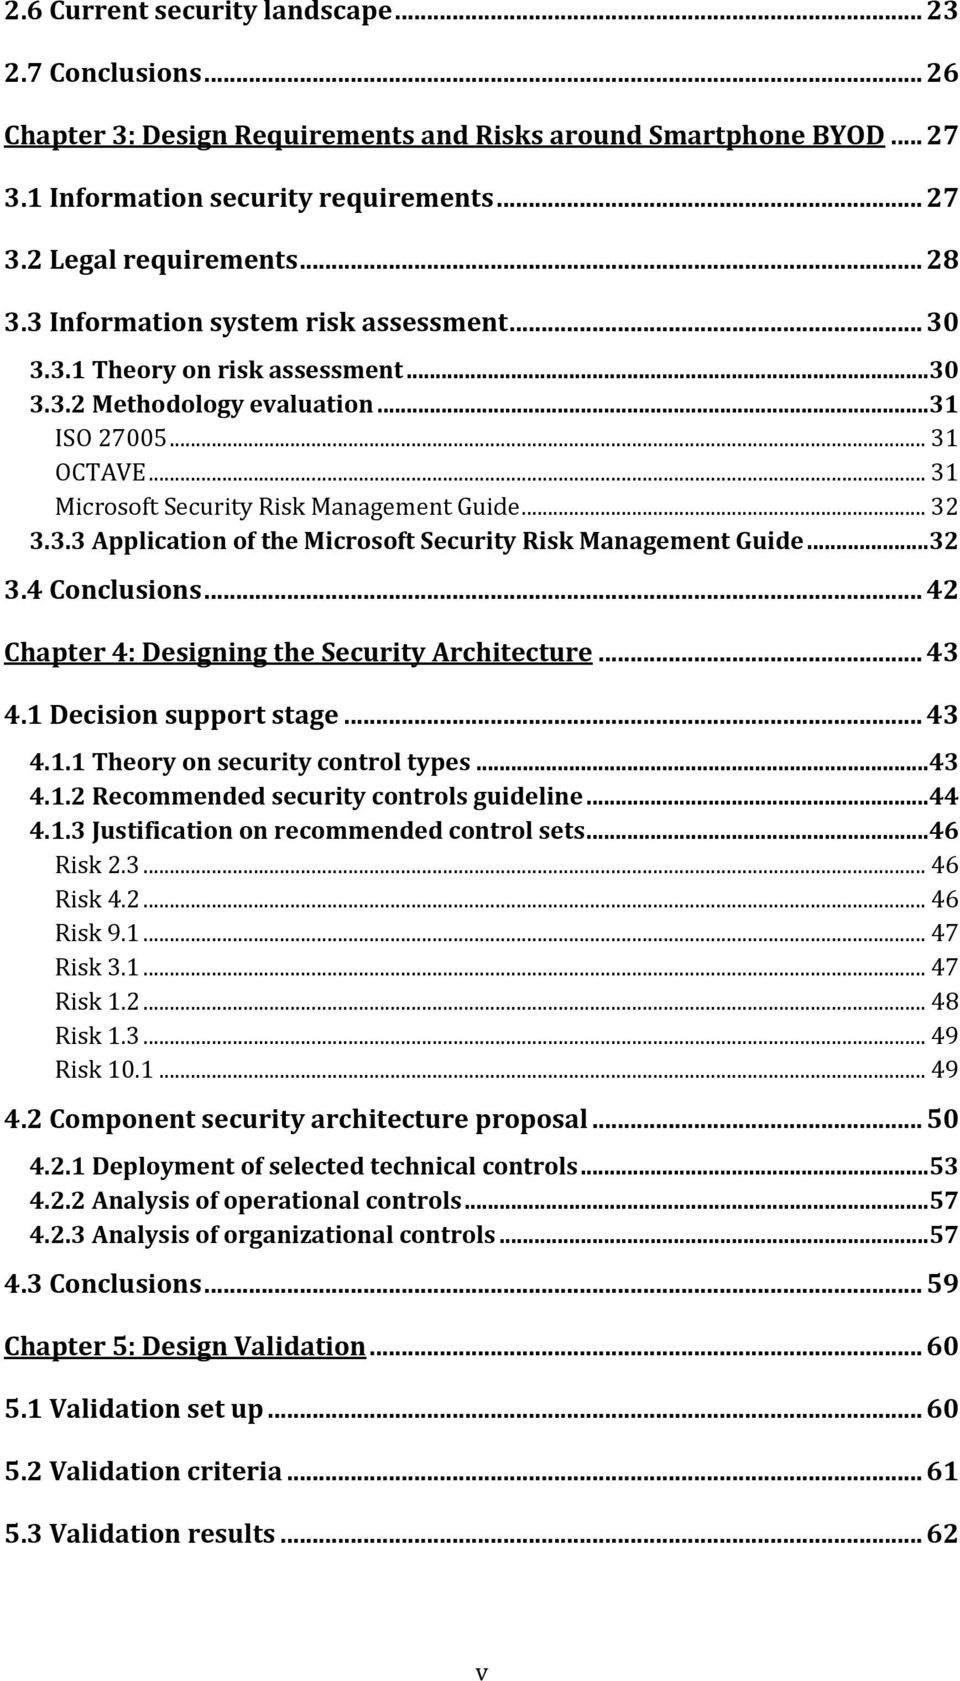 3.3 Application of the Microsoft Security Risk Management Guide...32 3.4 Conclusions... 42 Chapter 4: Designing the Security Architecture... 43 4.1 Decision support stage... 43 4.1.1 Theory on security control types.